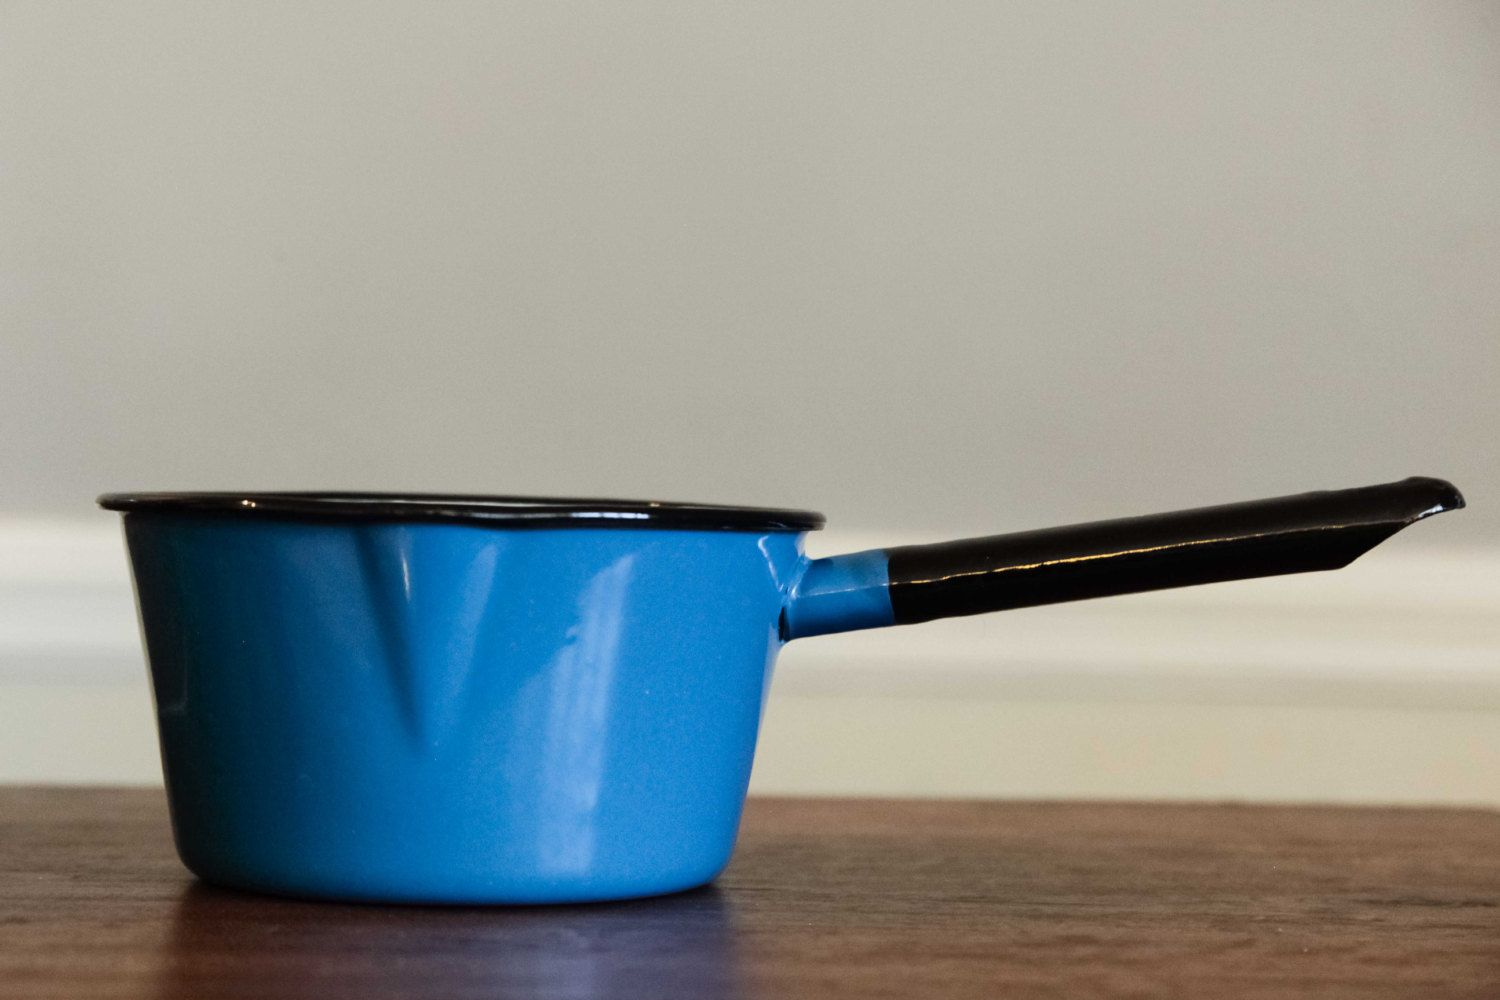 Blue Enamel Pot | Small | Hot Chocolate Pot | Vintage Pot with Spout | Cookware | Saucepan | by SecondsByJaneElaine on Etsy